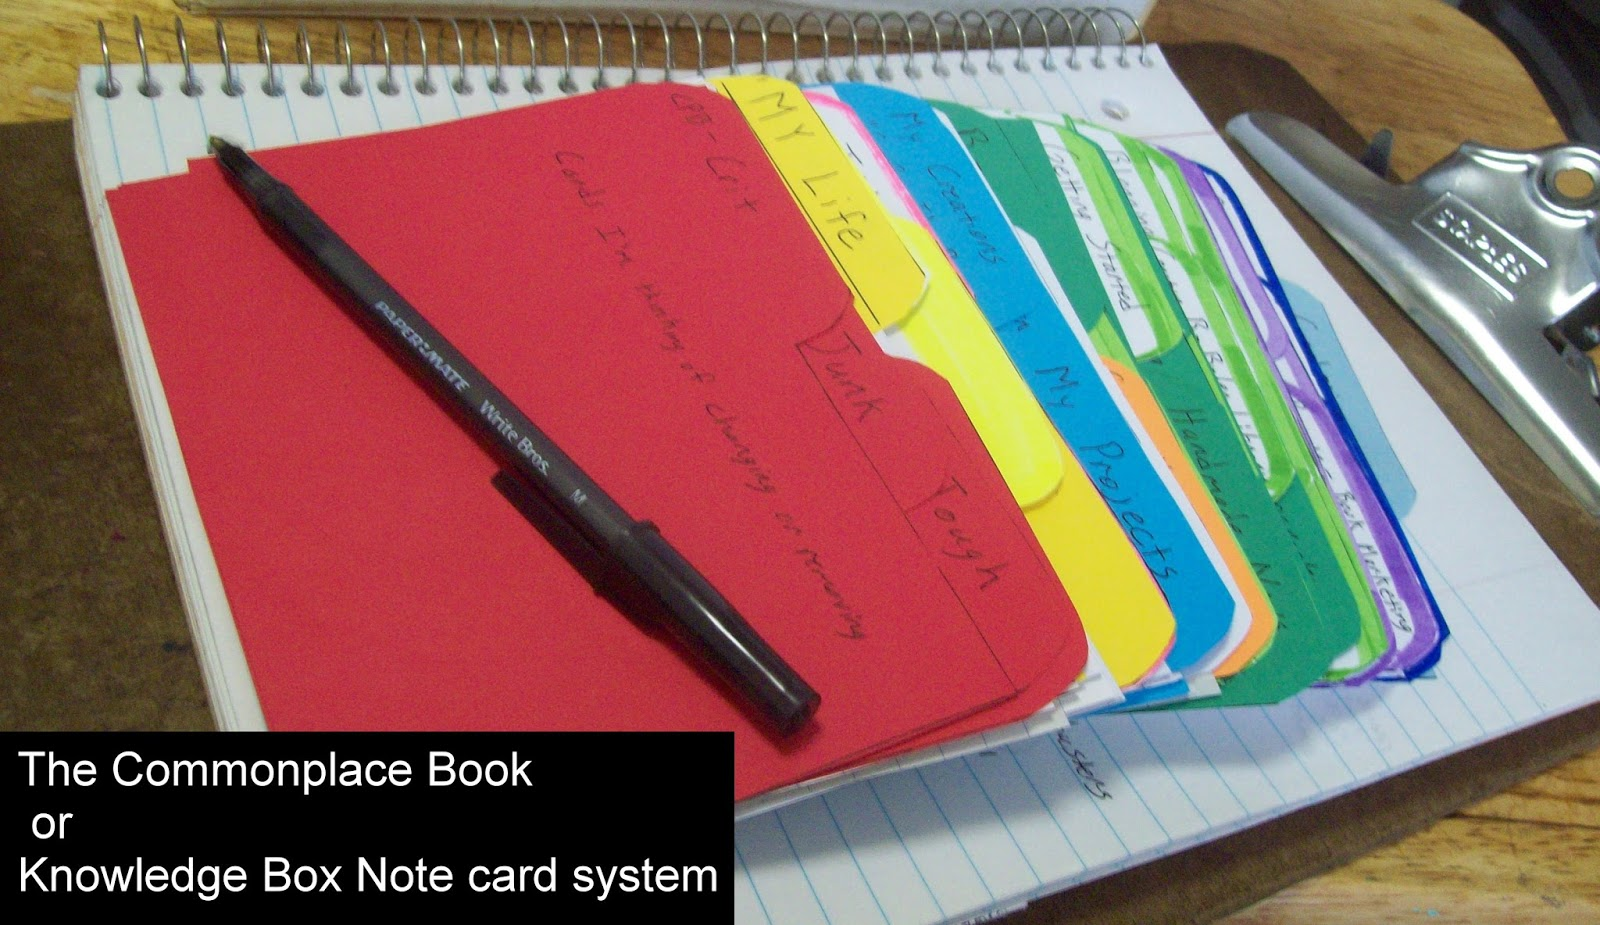 the commonplace book or knowledge box note card system